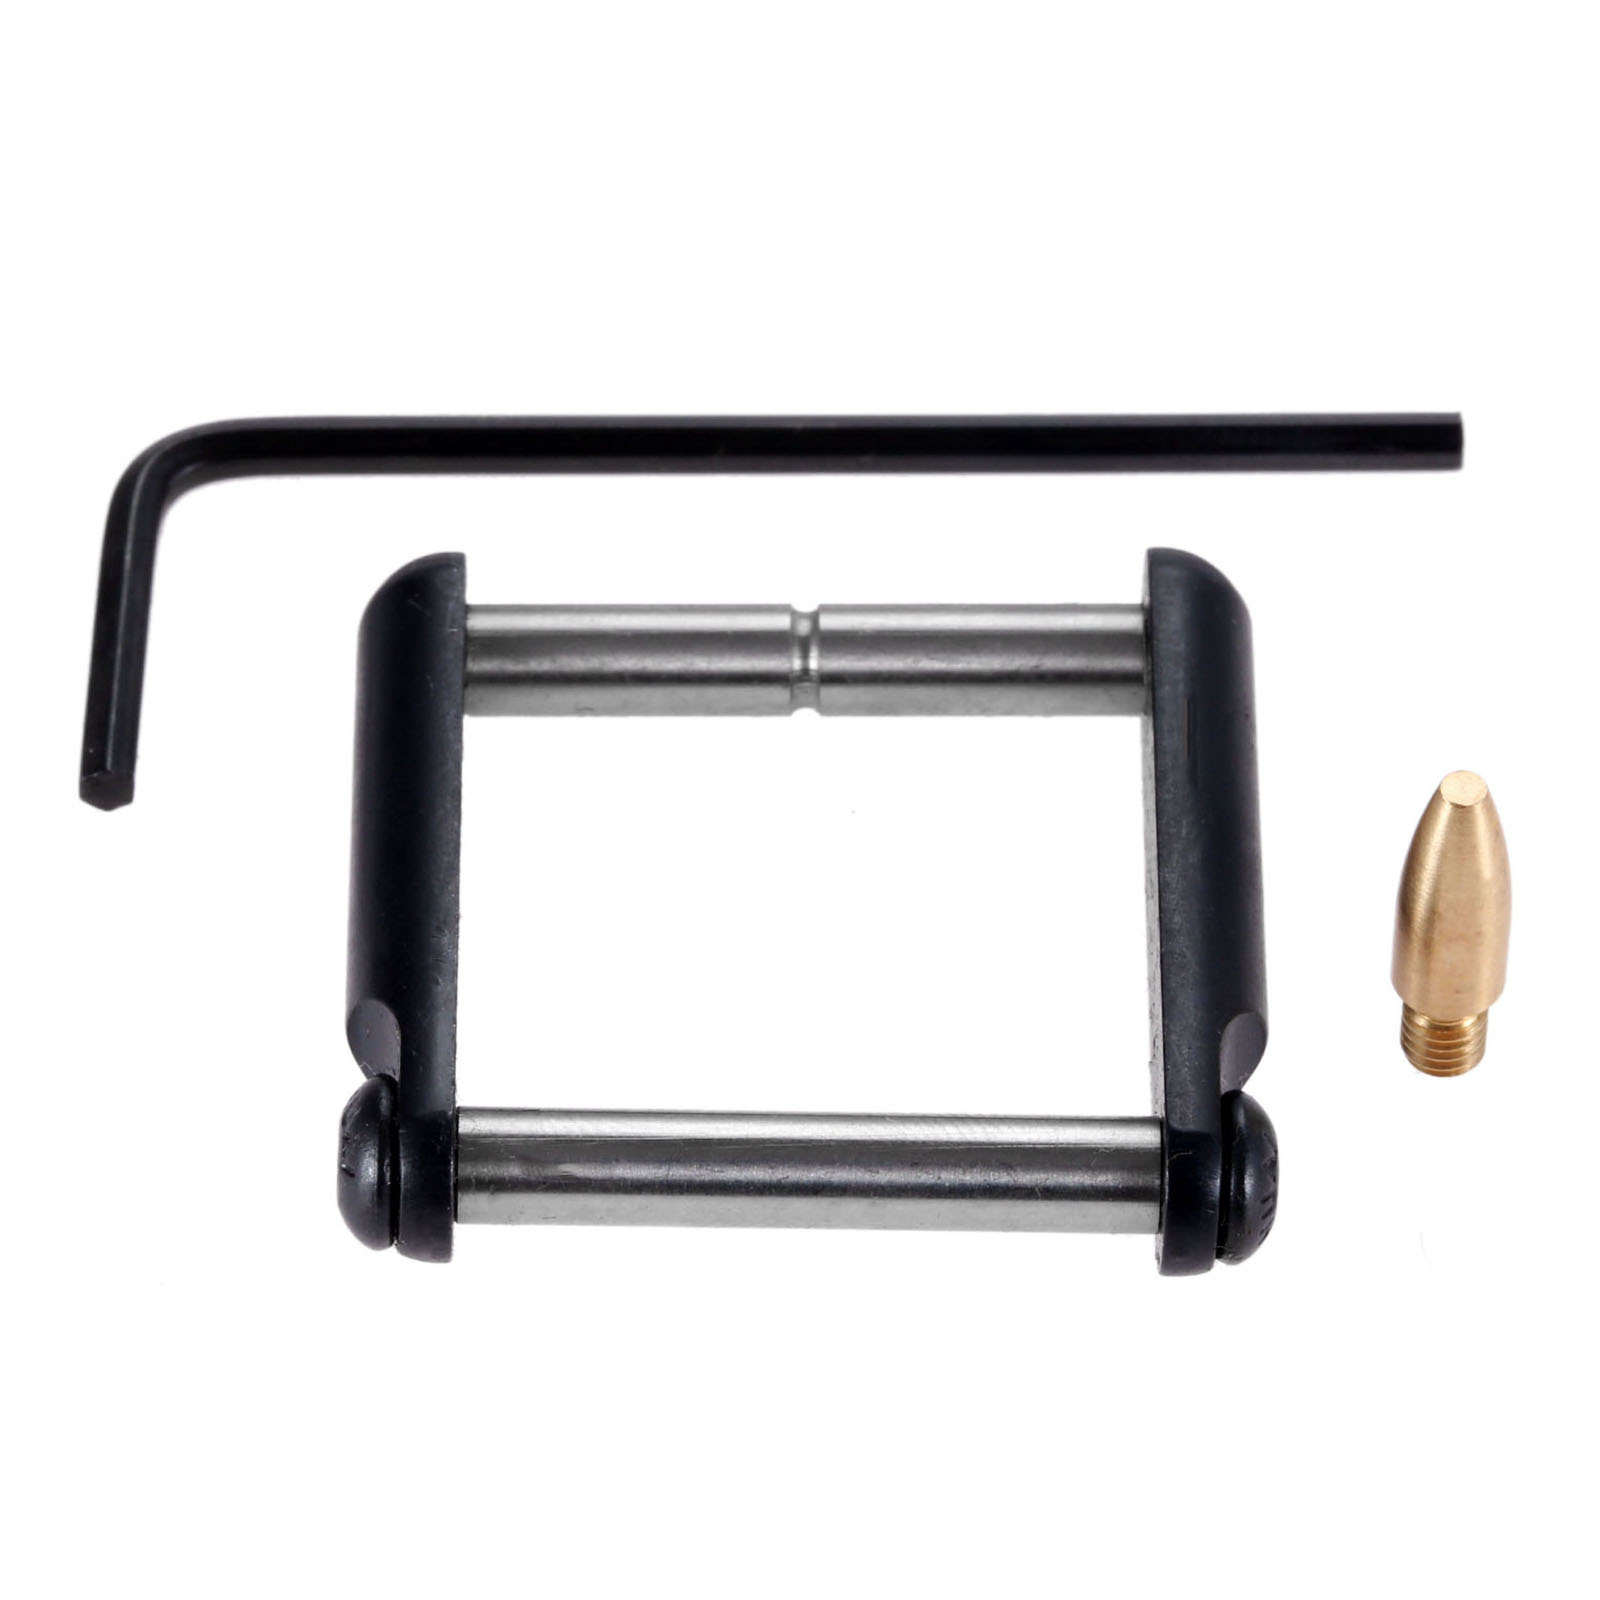 Tactical Gen 2 Side Plates .154 Pin Anti-Walk Trigger Hammer Pins Fits Hunting Rifles 5.56/.223/.308 Using Mspec Trigger Group